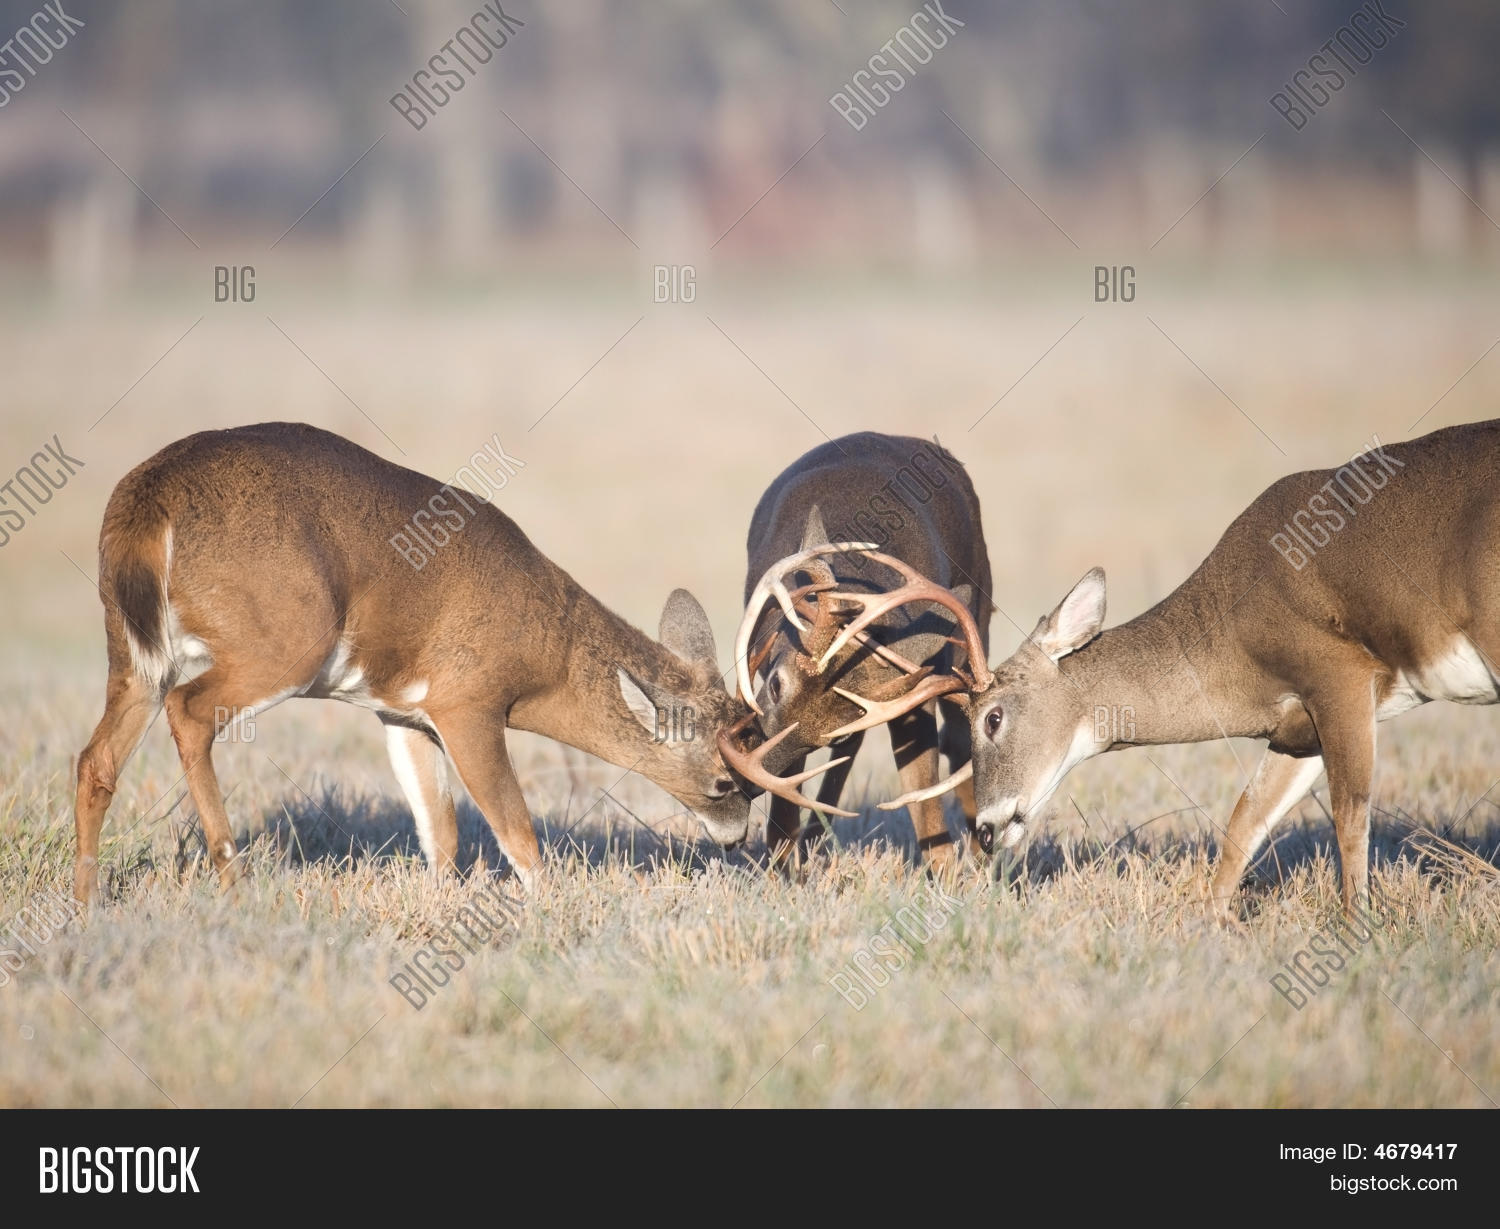 Choctaw Hunting Lodge: 44,000 Acres of hunting land Pictures of whitetail bucks fighting